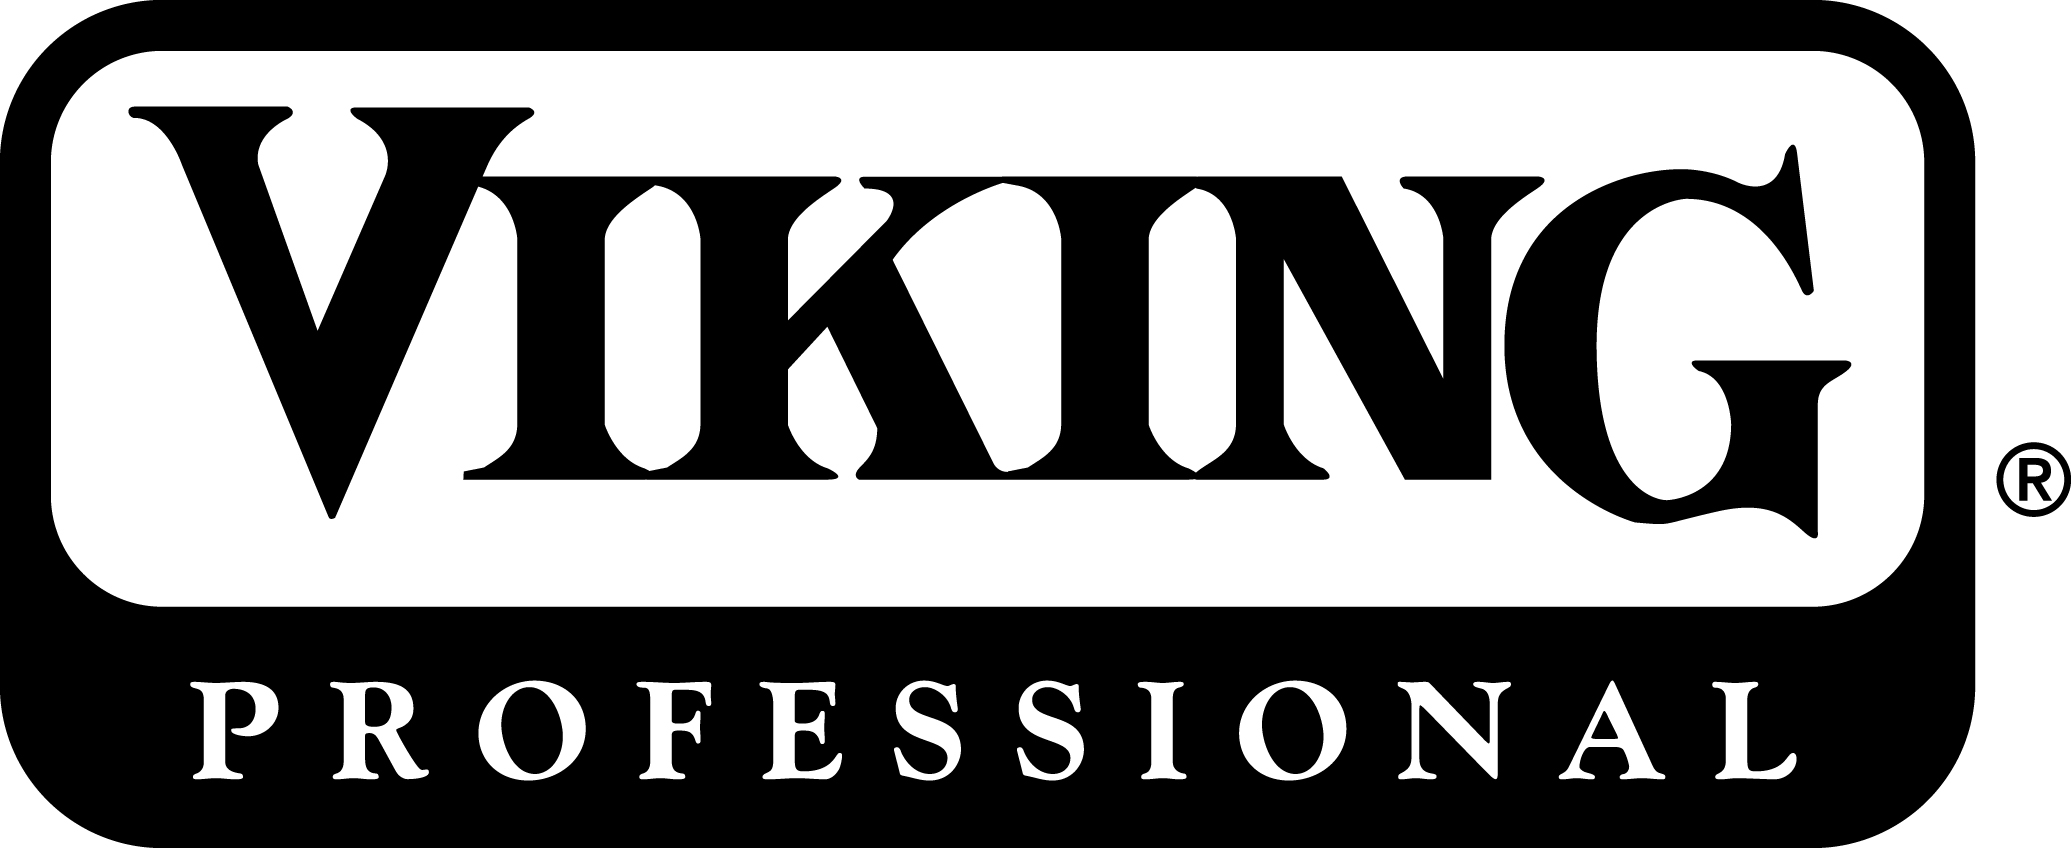 Viking Stoves Oven Repairs, Kenmore Stove Repair